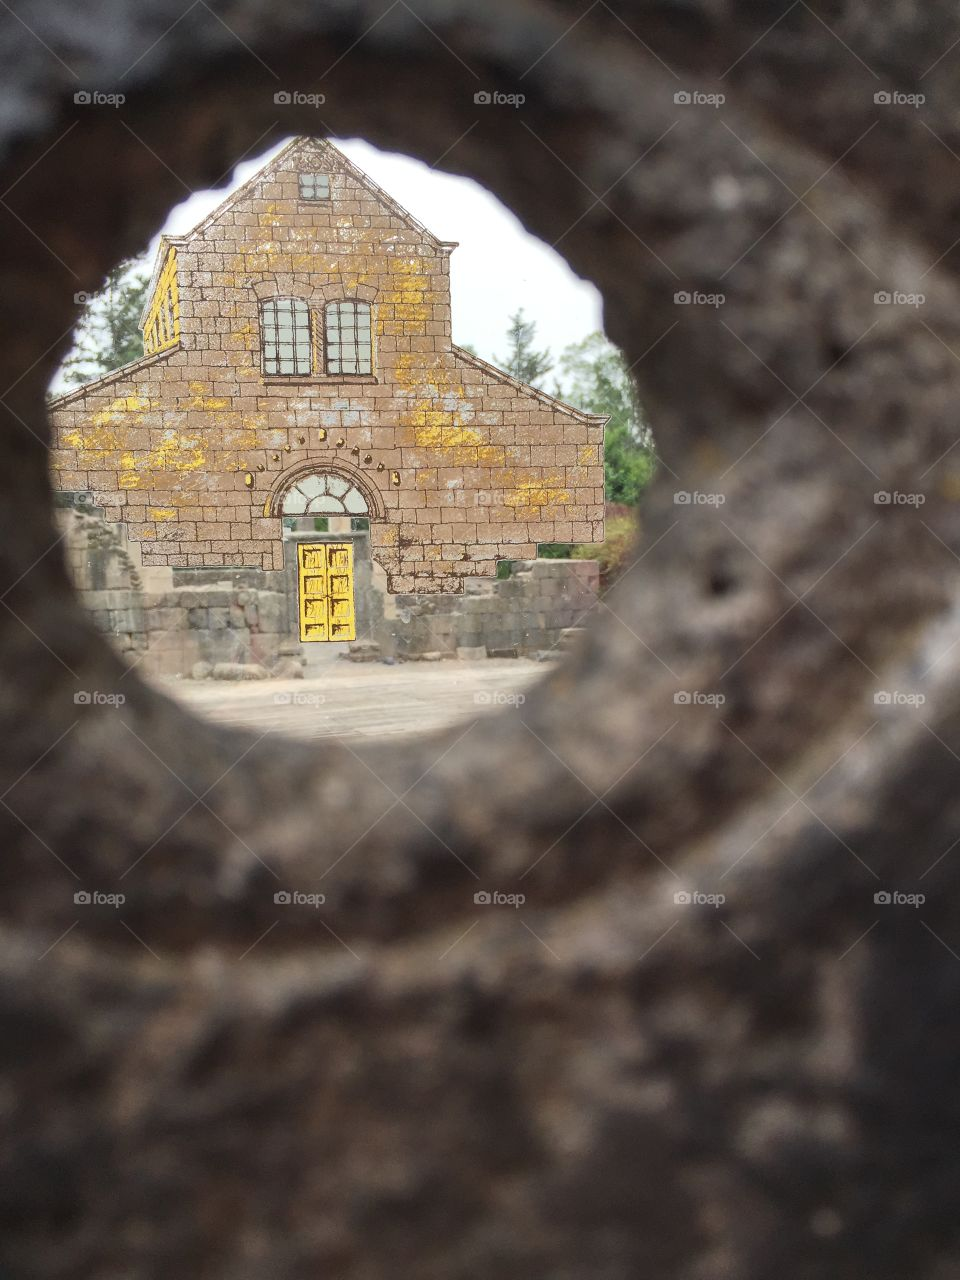 House in the hole frame